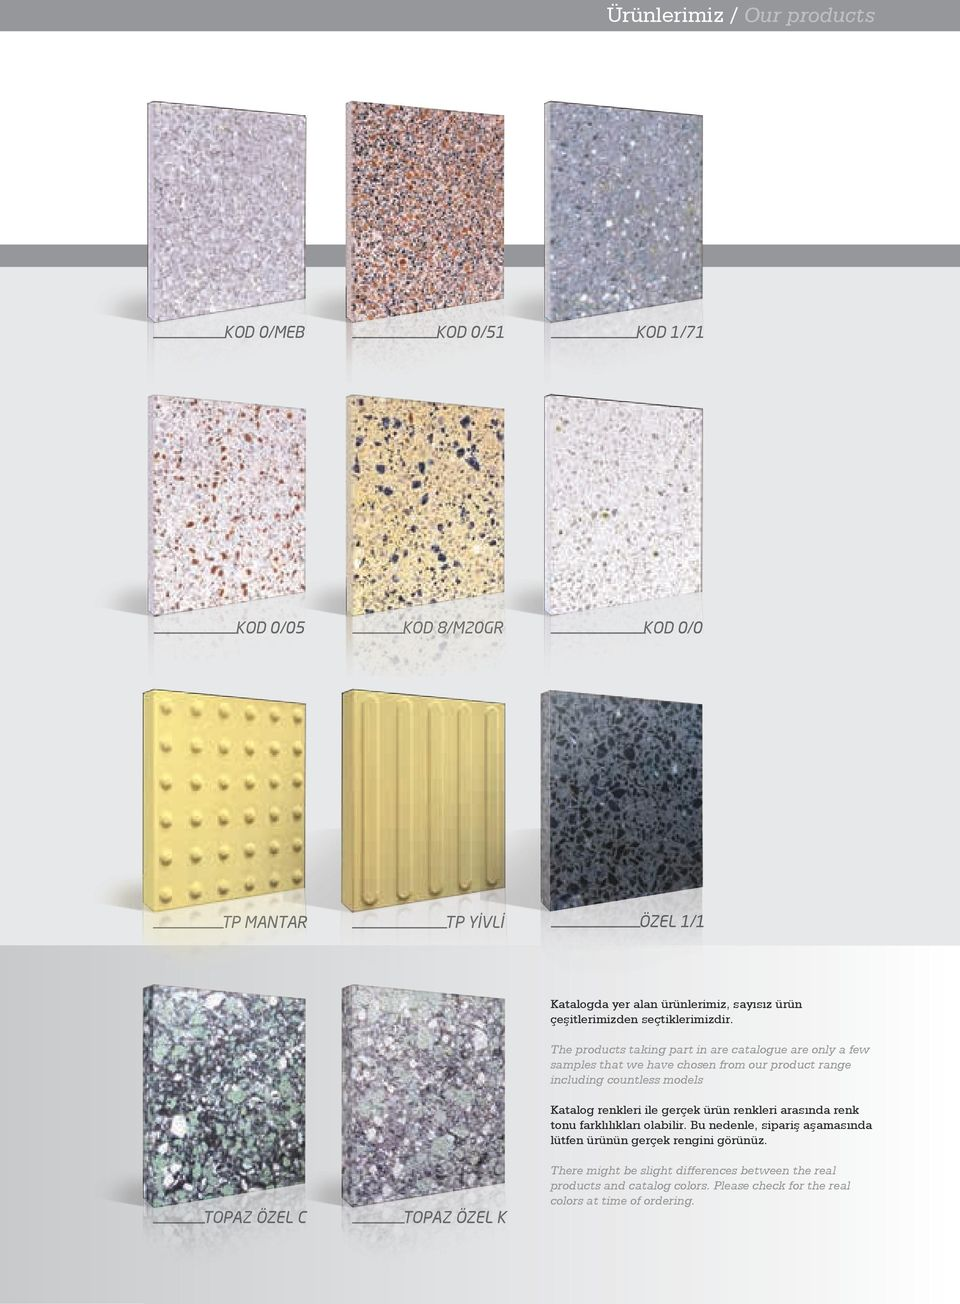 The products taking part in are catalogue are only a few samples that we have chosen from our product range including countless models Katalog renkleri ile